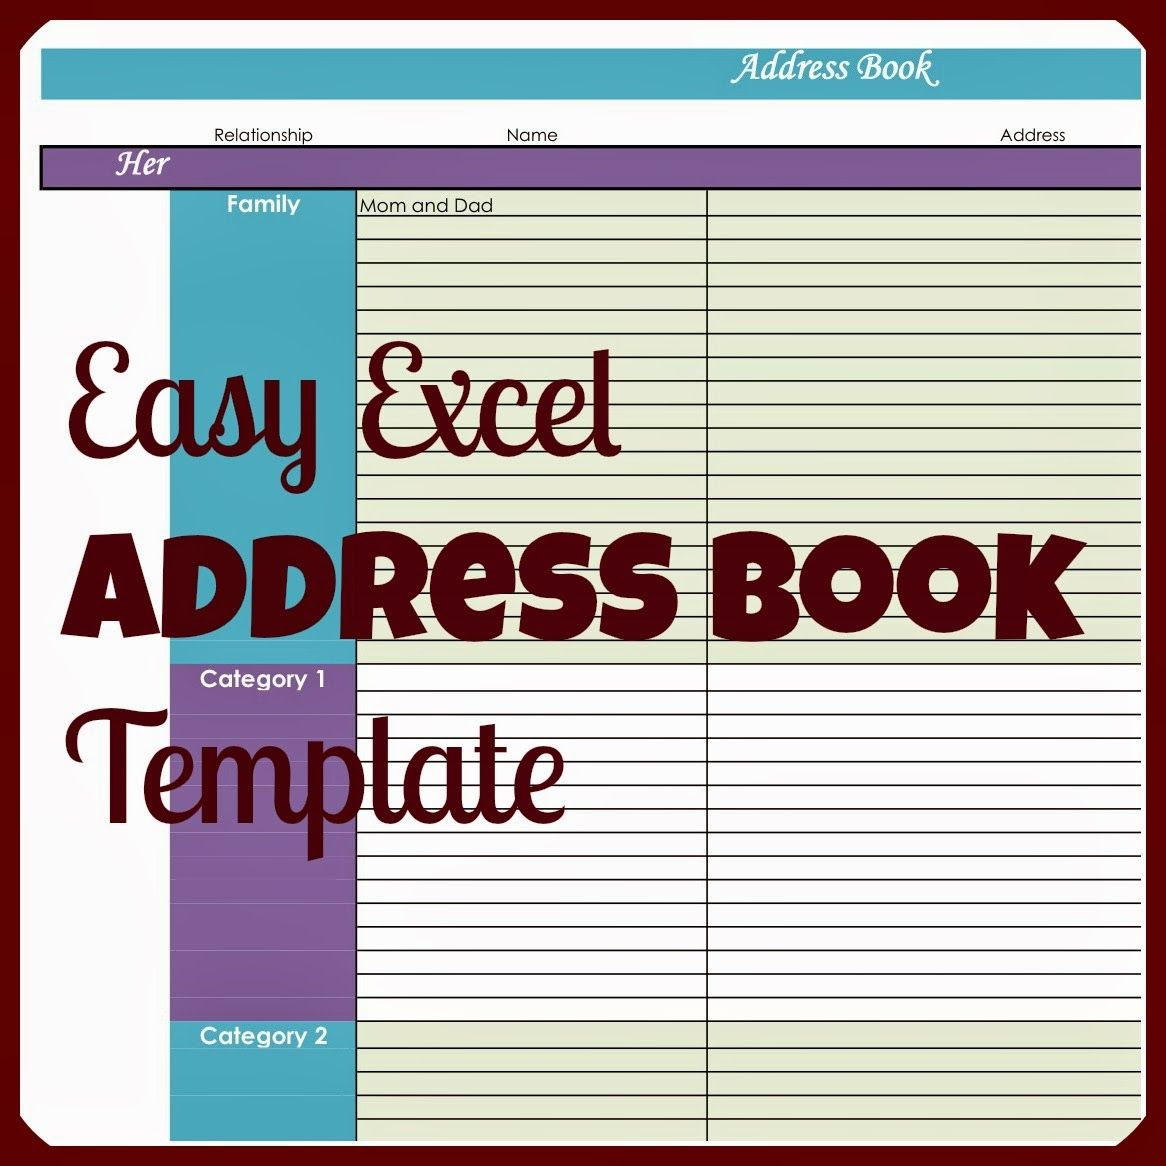 Laura's Plans: Easy Excel Address Book Template